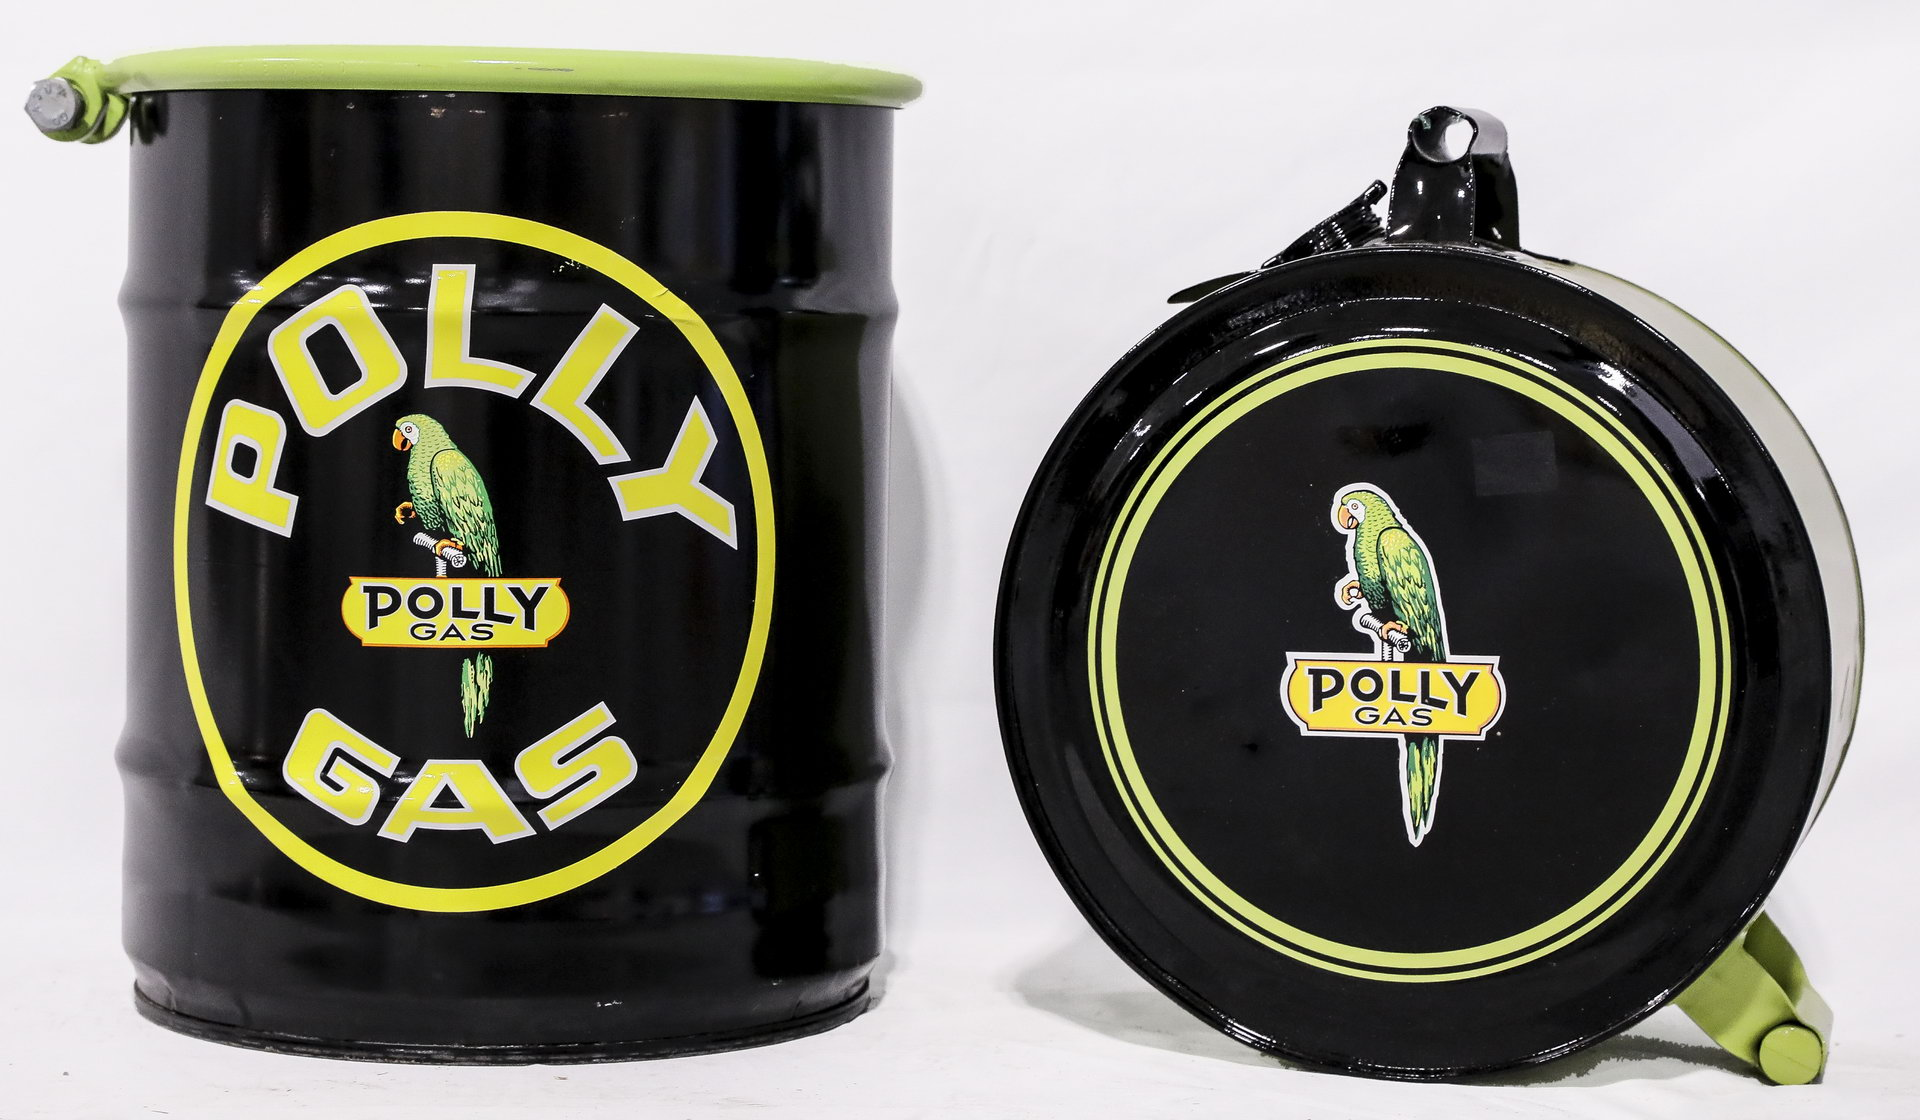 Lot of 2 Polly Gas Restored Oil Cans